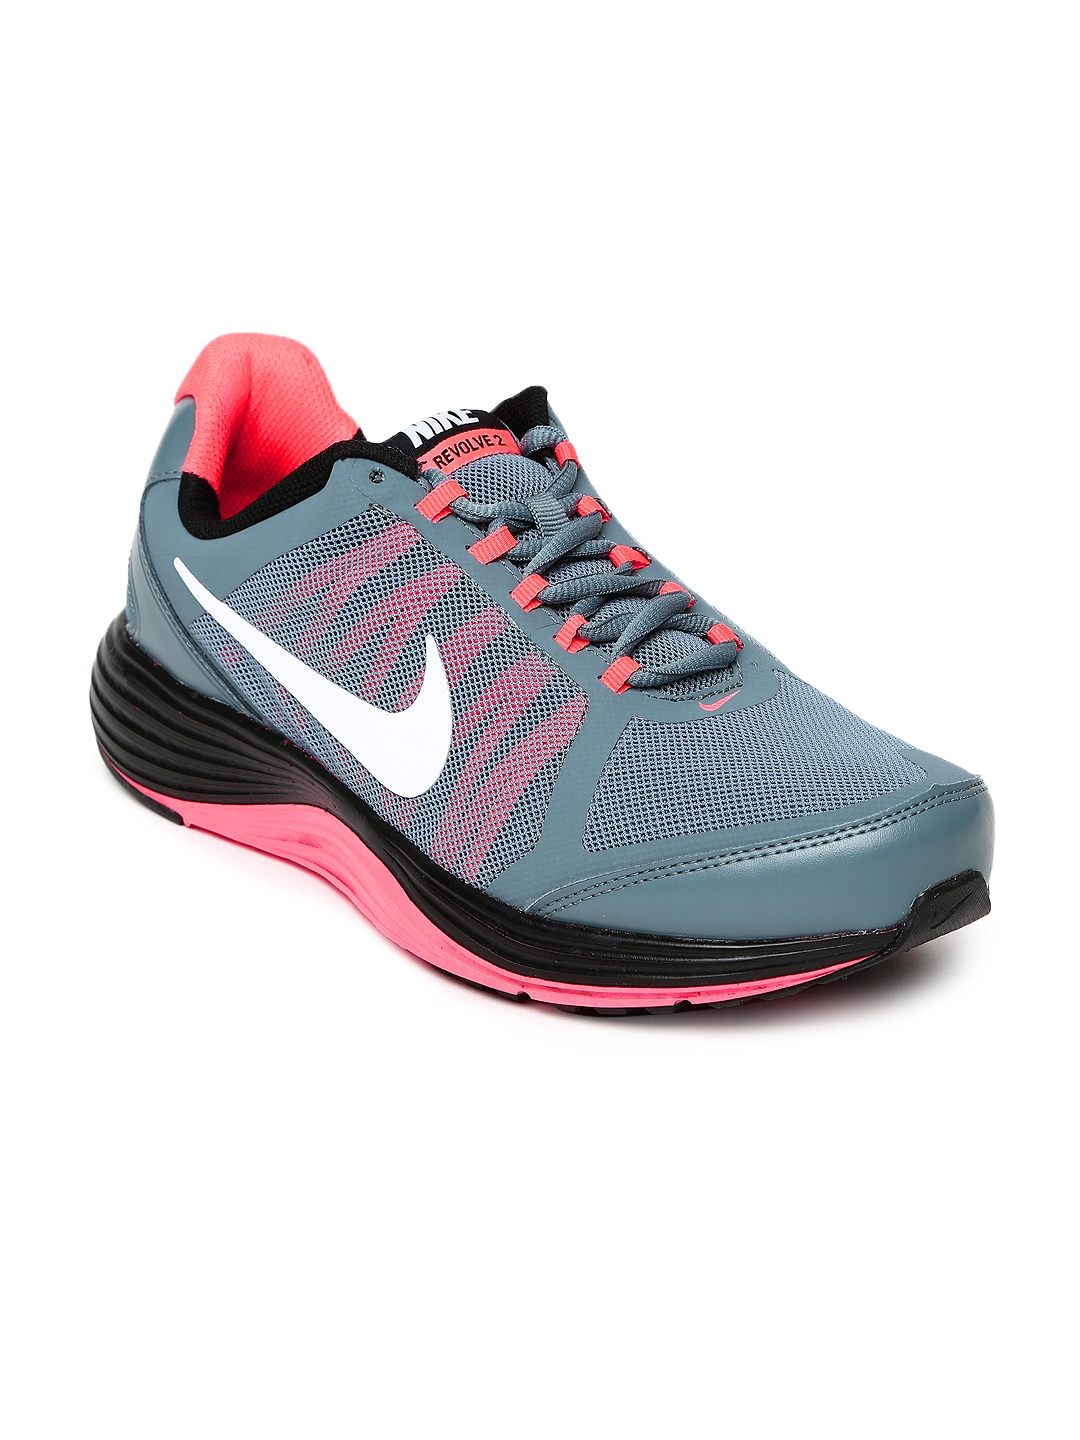 myntra nike grey revolve 2 running shoes 731398 buy